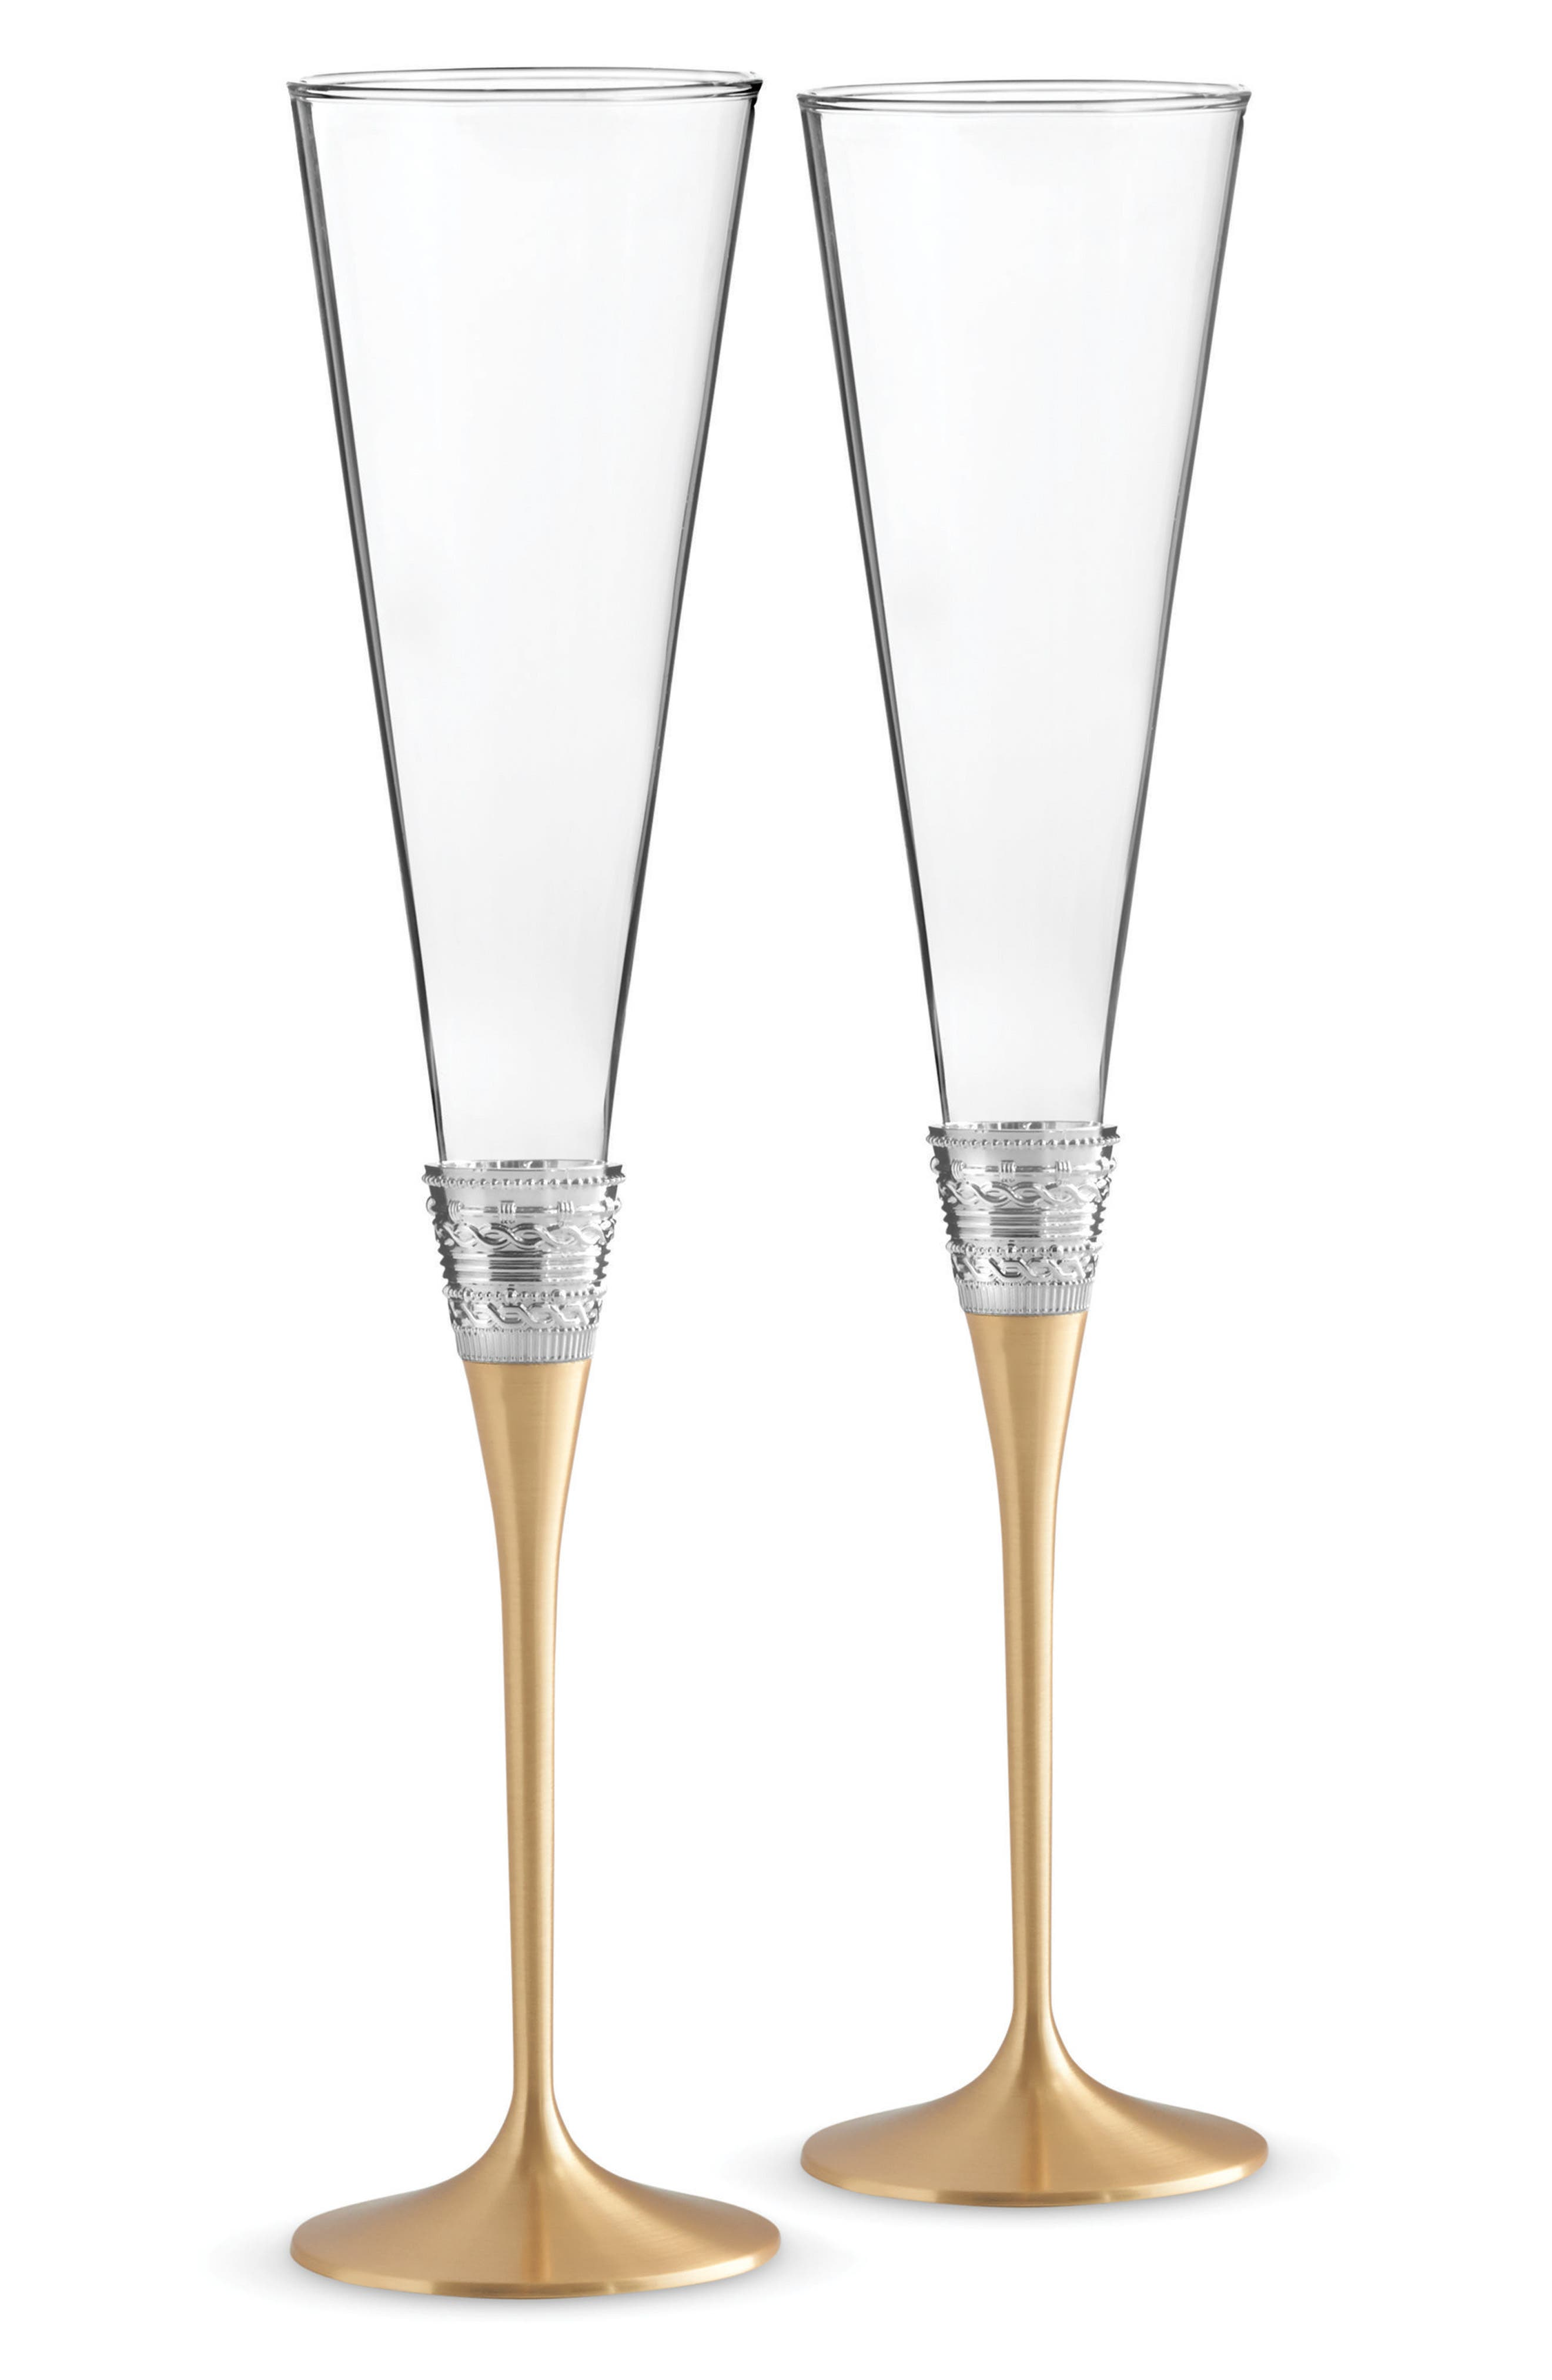 x Wedgwood With Love Collection Set of 2 Toasting Flutes,                             Main thumbnail 1, color,                             Metallic Silver